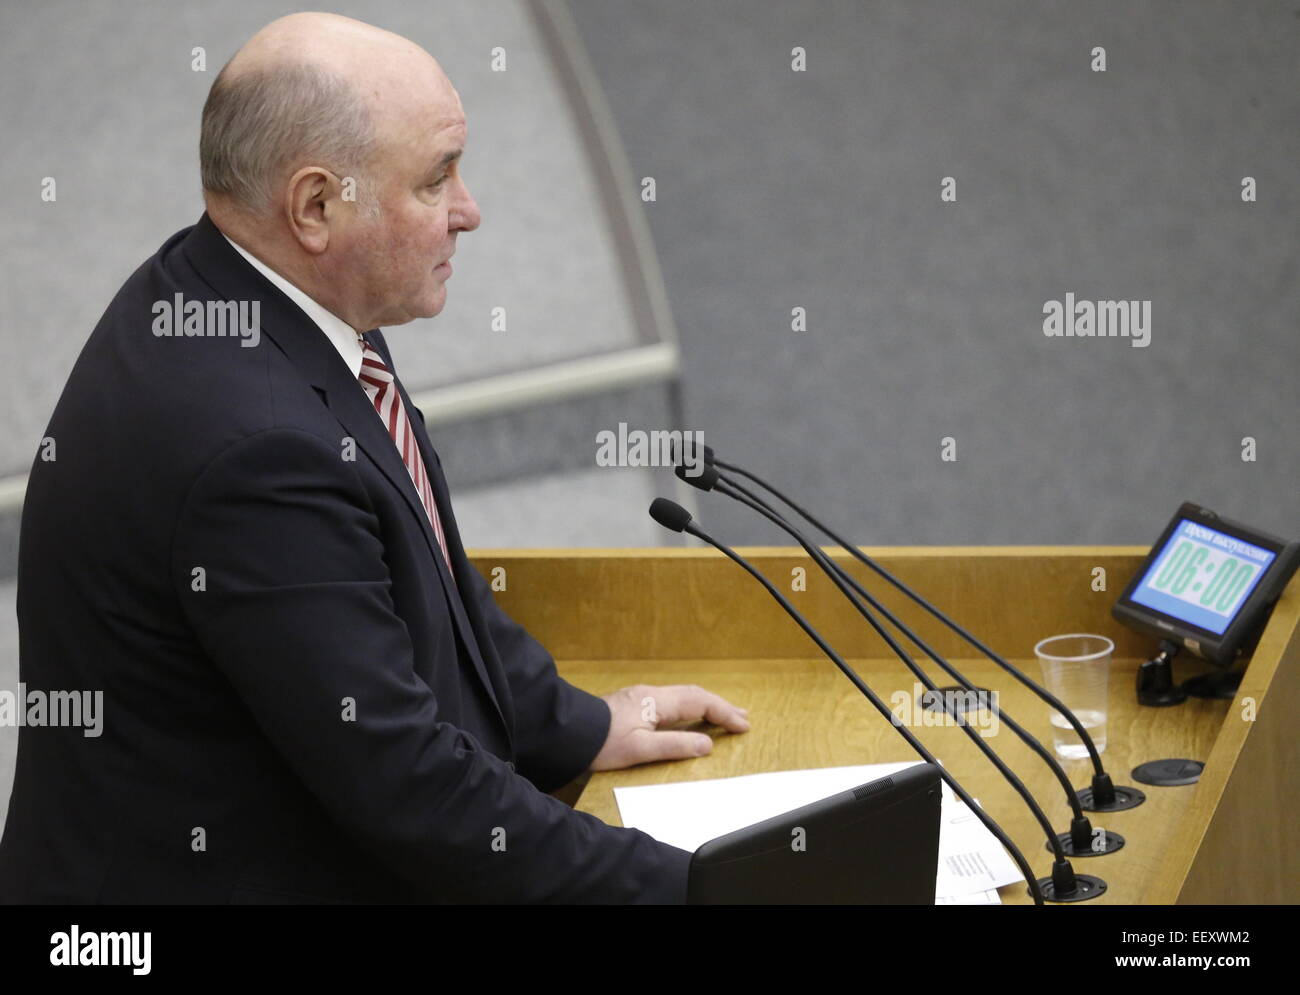 Moscow, Russia. 23rd Jan, 2015. Russia's deputy foreign minister Grigory Karasin speaks at a plenary meeting - Stock Image